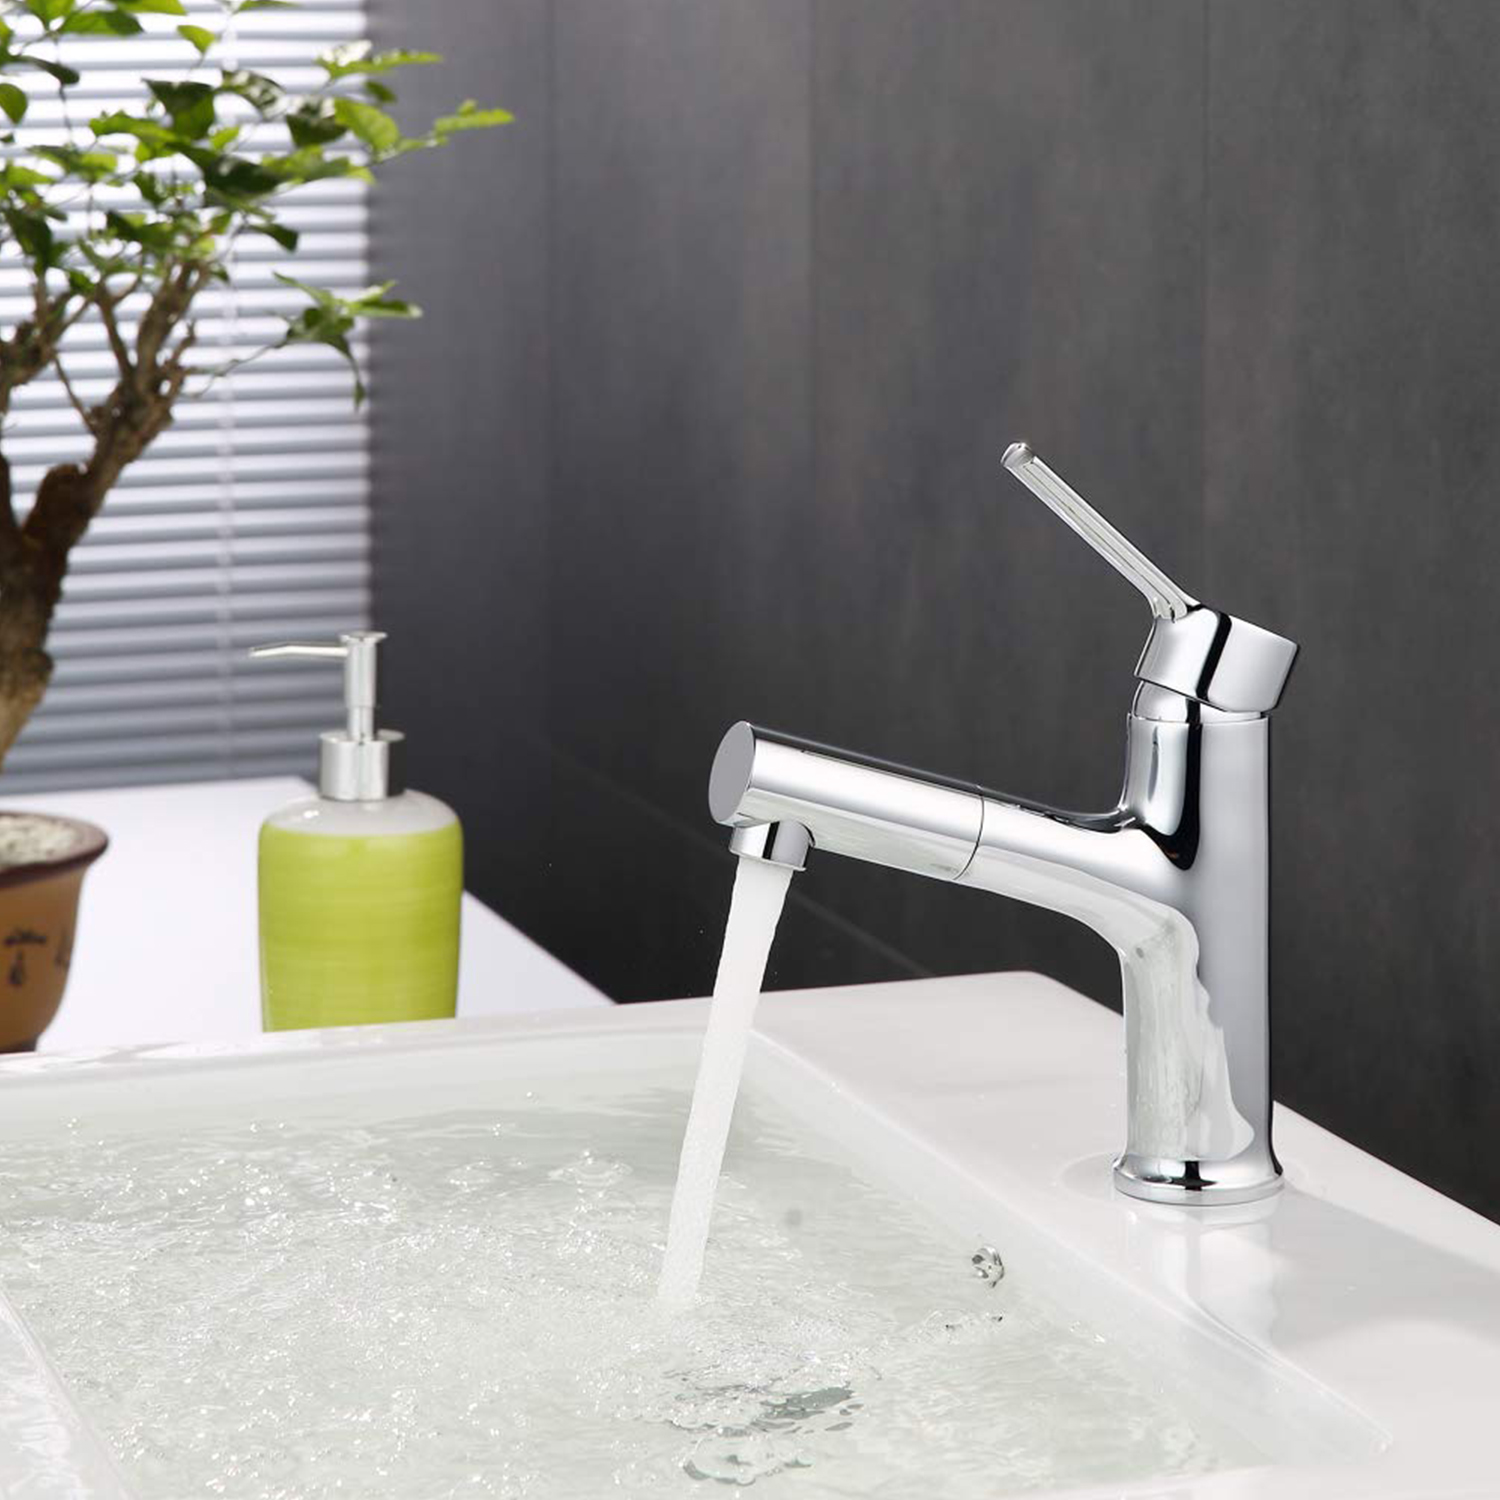 Kitchen Faucet Sprayer Head Sink 2 Functions Spray Head G1/2 Pull Out Spray Head Nozzle for Kitchen Faucet Pull Down Faucet